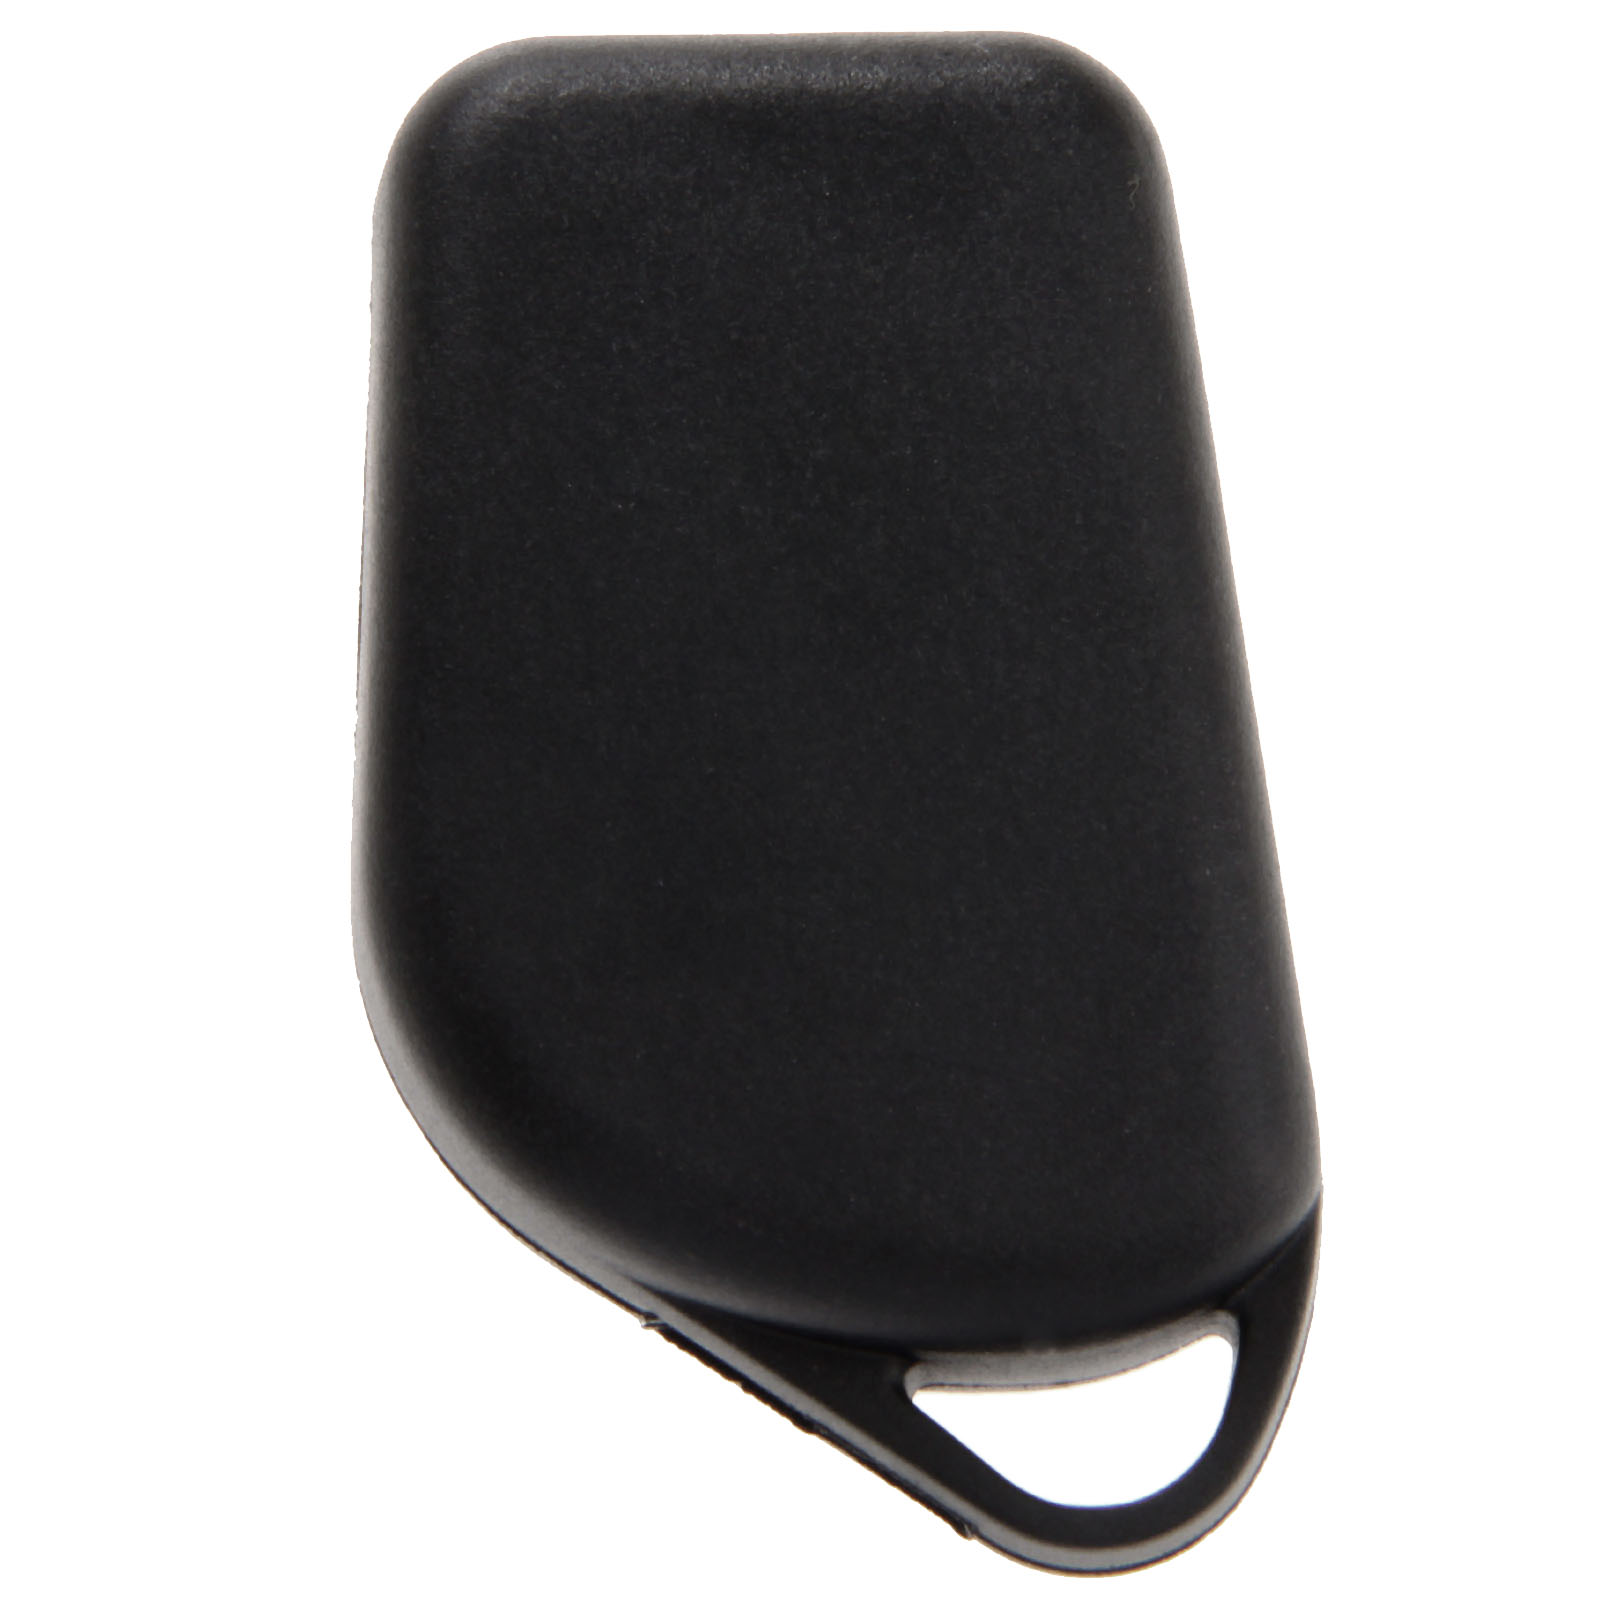 Image 4 - 2 Buttons Remote Key Fob Case Shell Fit For Citroen Saxo Berlingo Picasso Xsara Peugeot 306 307 406 Replacement Car Covers-in Car Key from Automobiles & Motorcycles